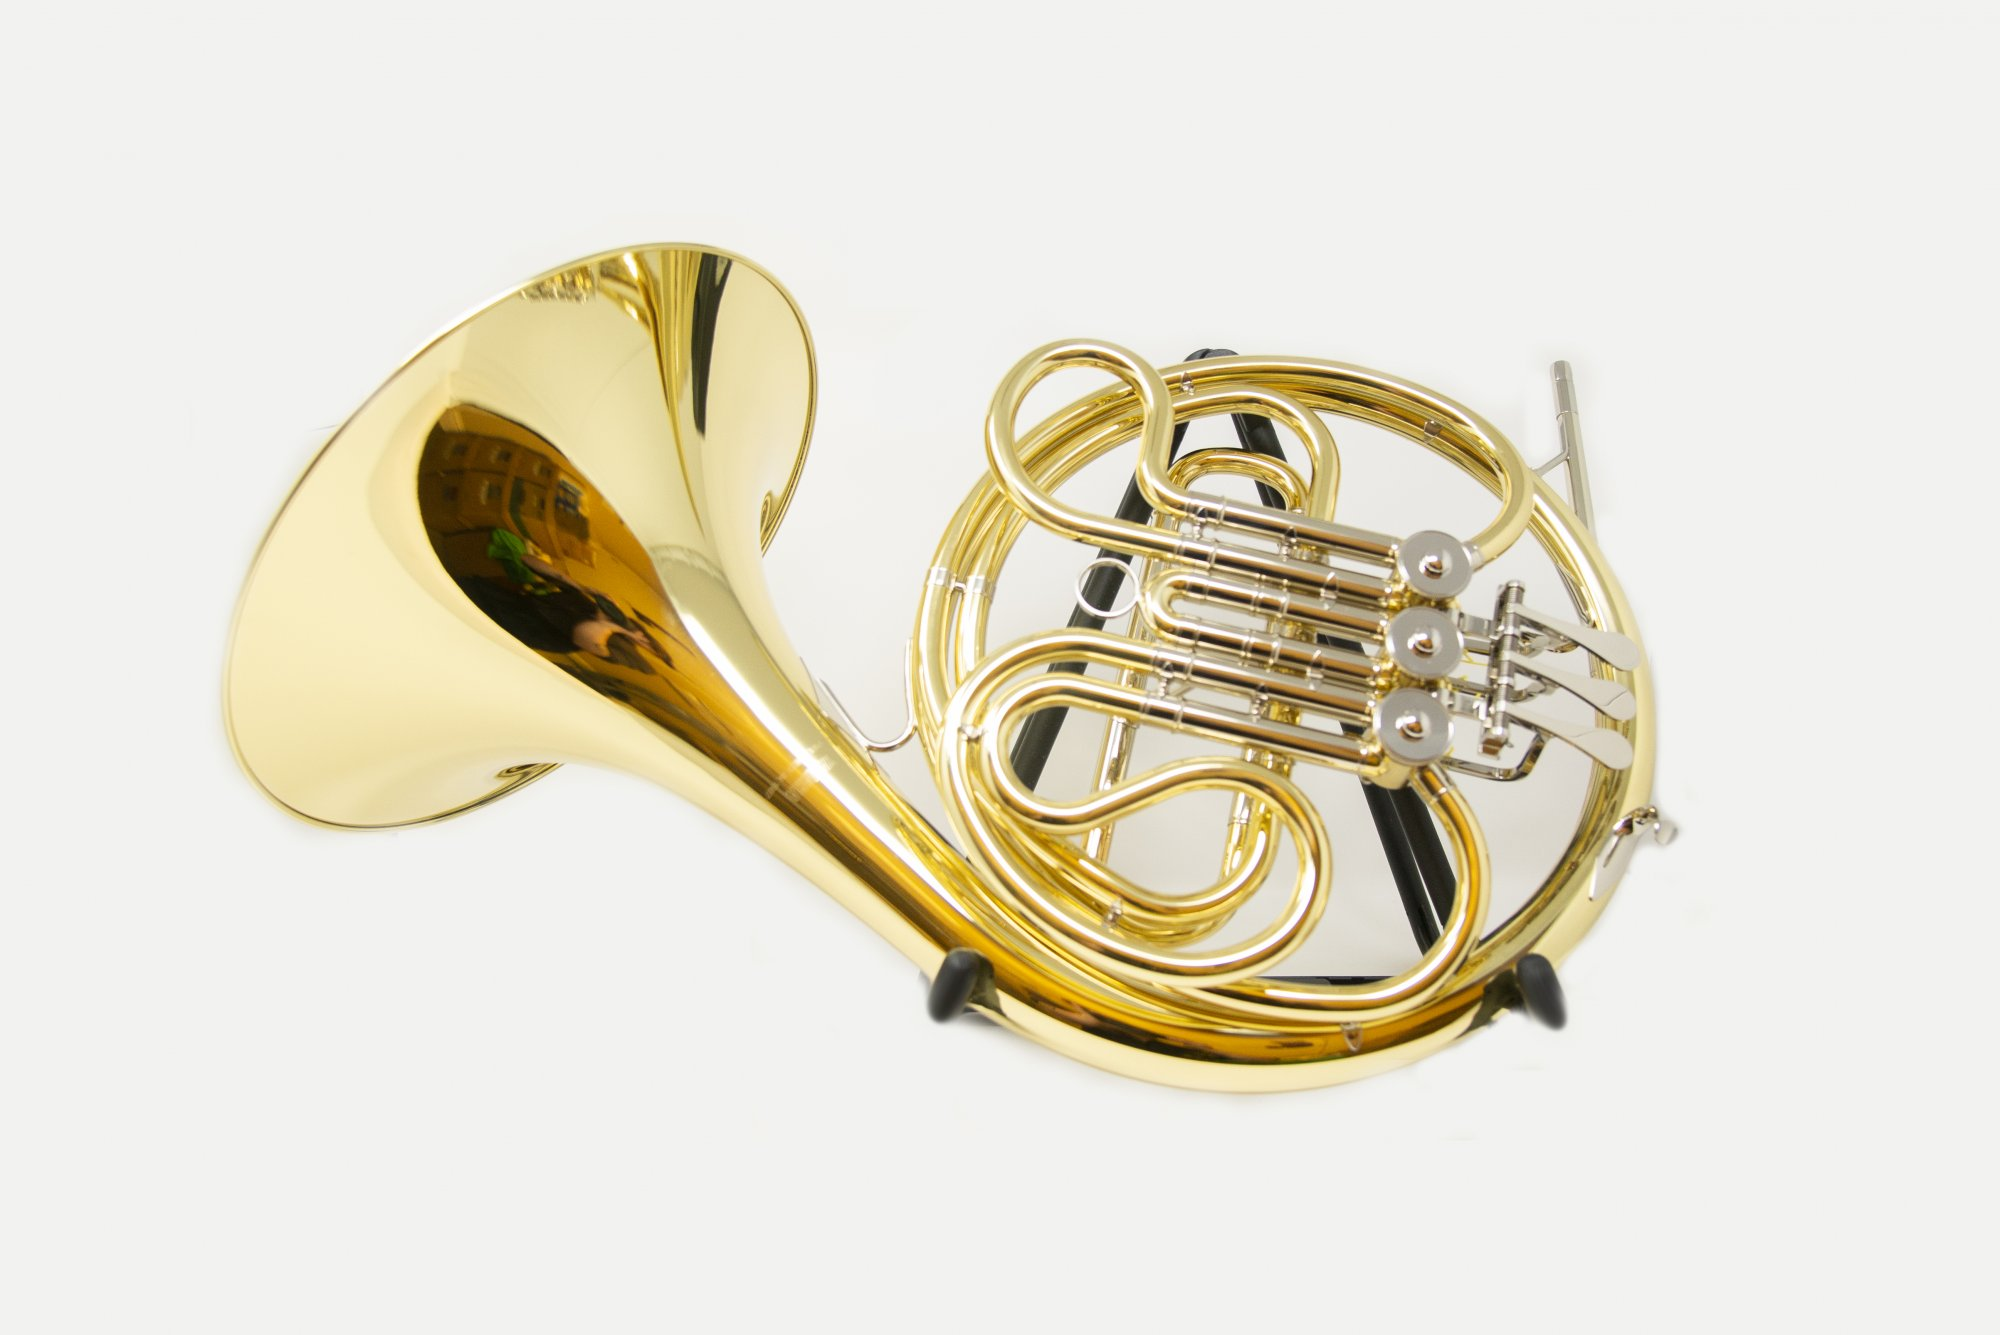 Yamaha YHR-314II Standard Single French Horn